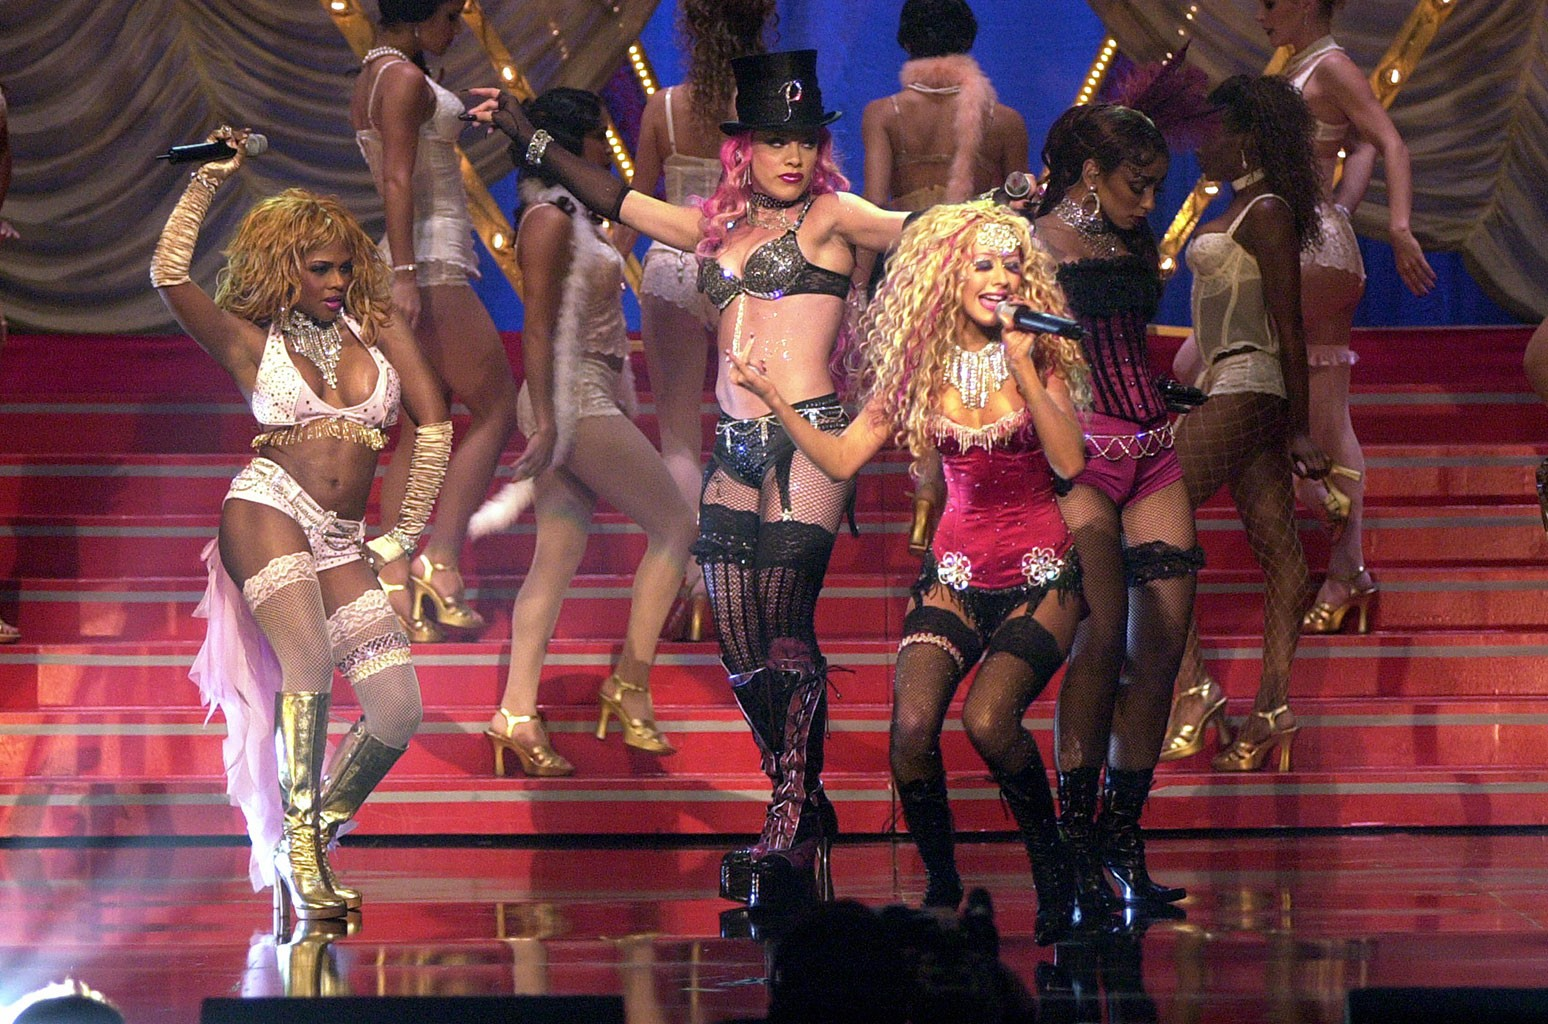 Pink, Lil' Kim, Mya, Christina Aguilera during 2001 MTV Movie Awards - Show at the Shrine Auditorium in Los Angeles, California.  (Photo by Kevin Mazur/WireImage)